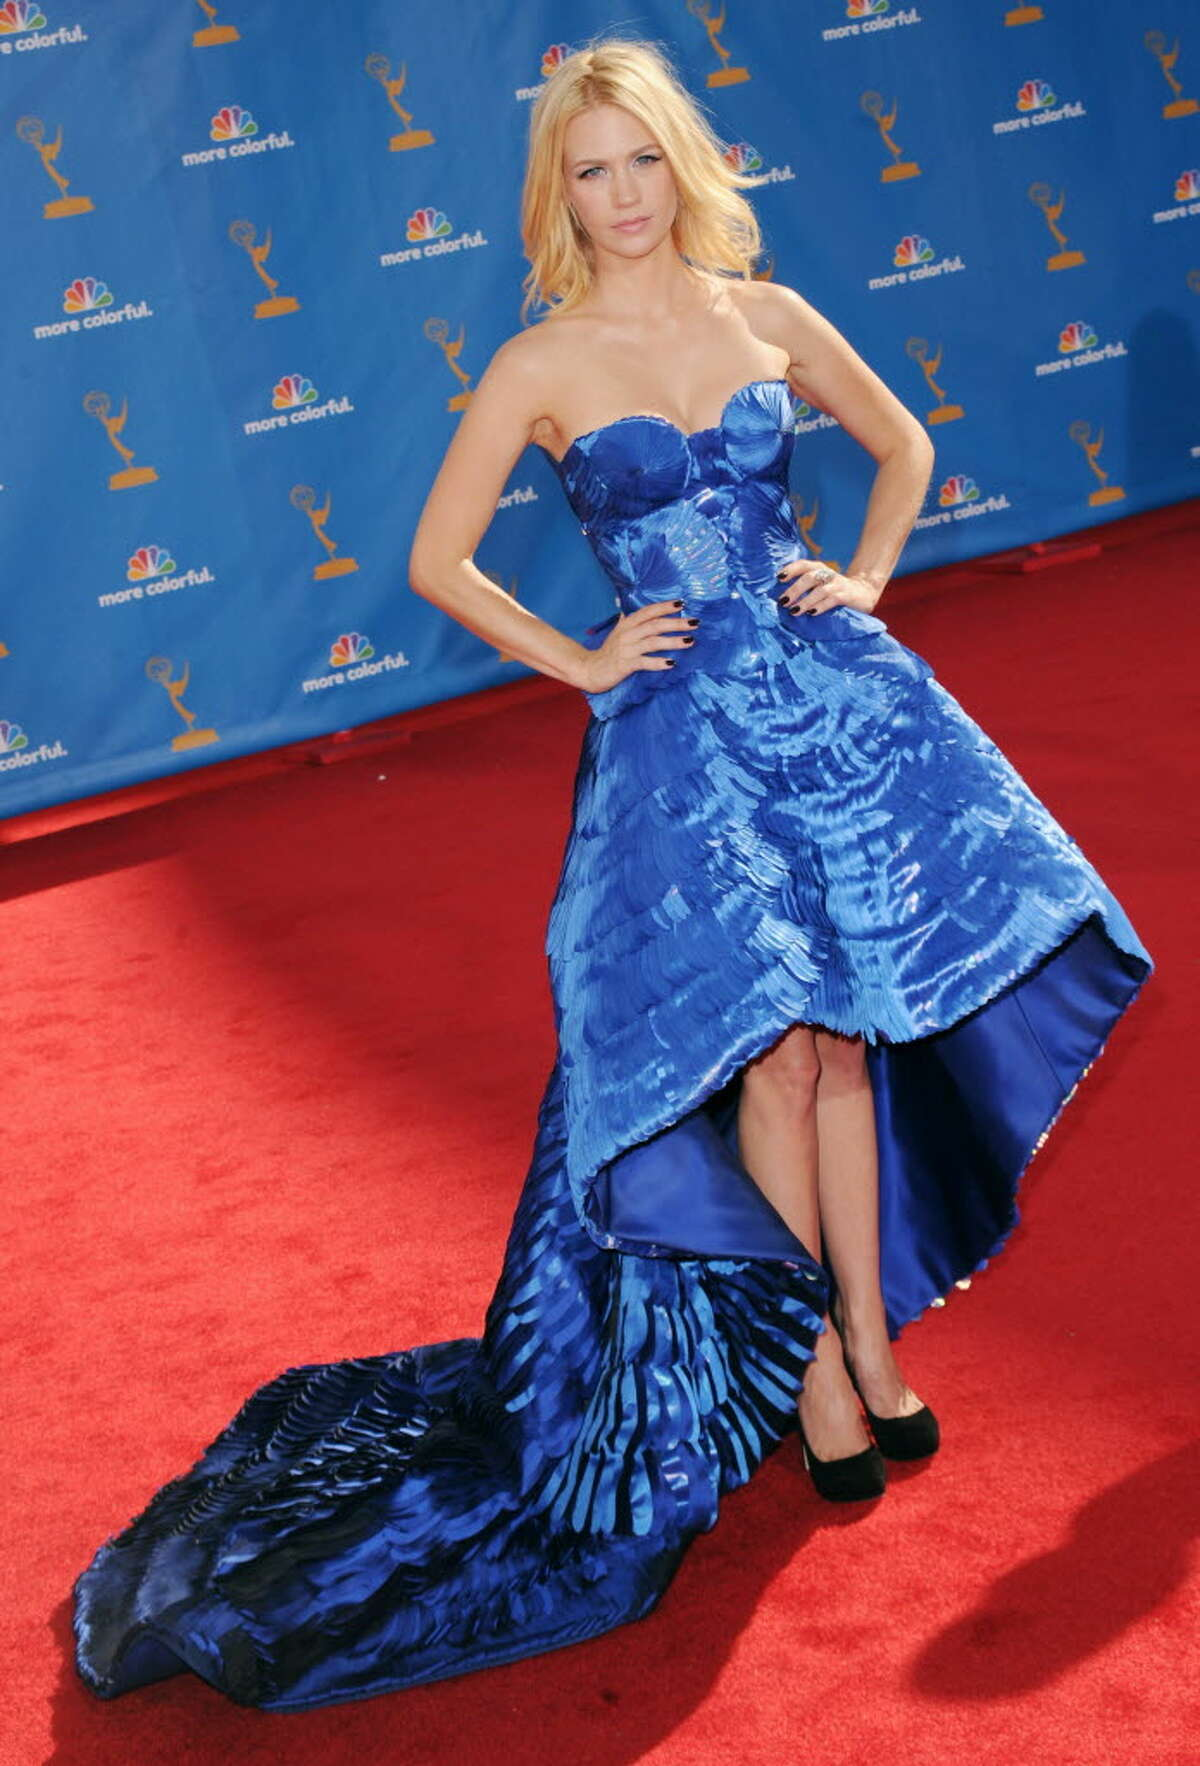 Actress January Jones arrives at the 62nd Annual Primetime Emmy Awards held at the Nokia Theatre L.A. Live on August 29, 2010 in Los Angeles, California. (Photo by Jason Merritt/Getty Images)